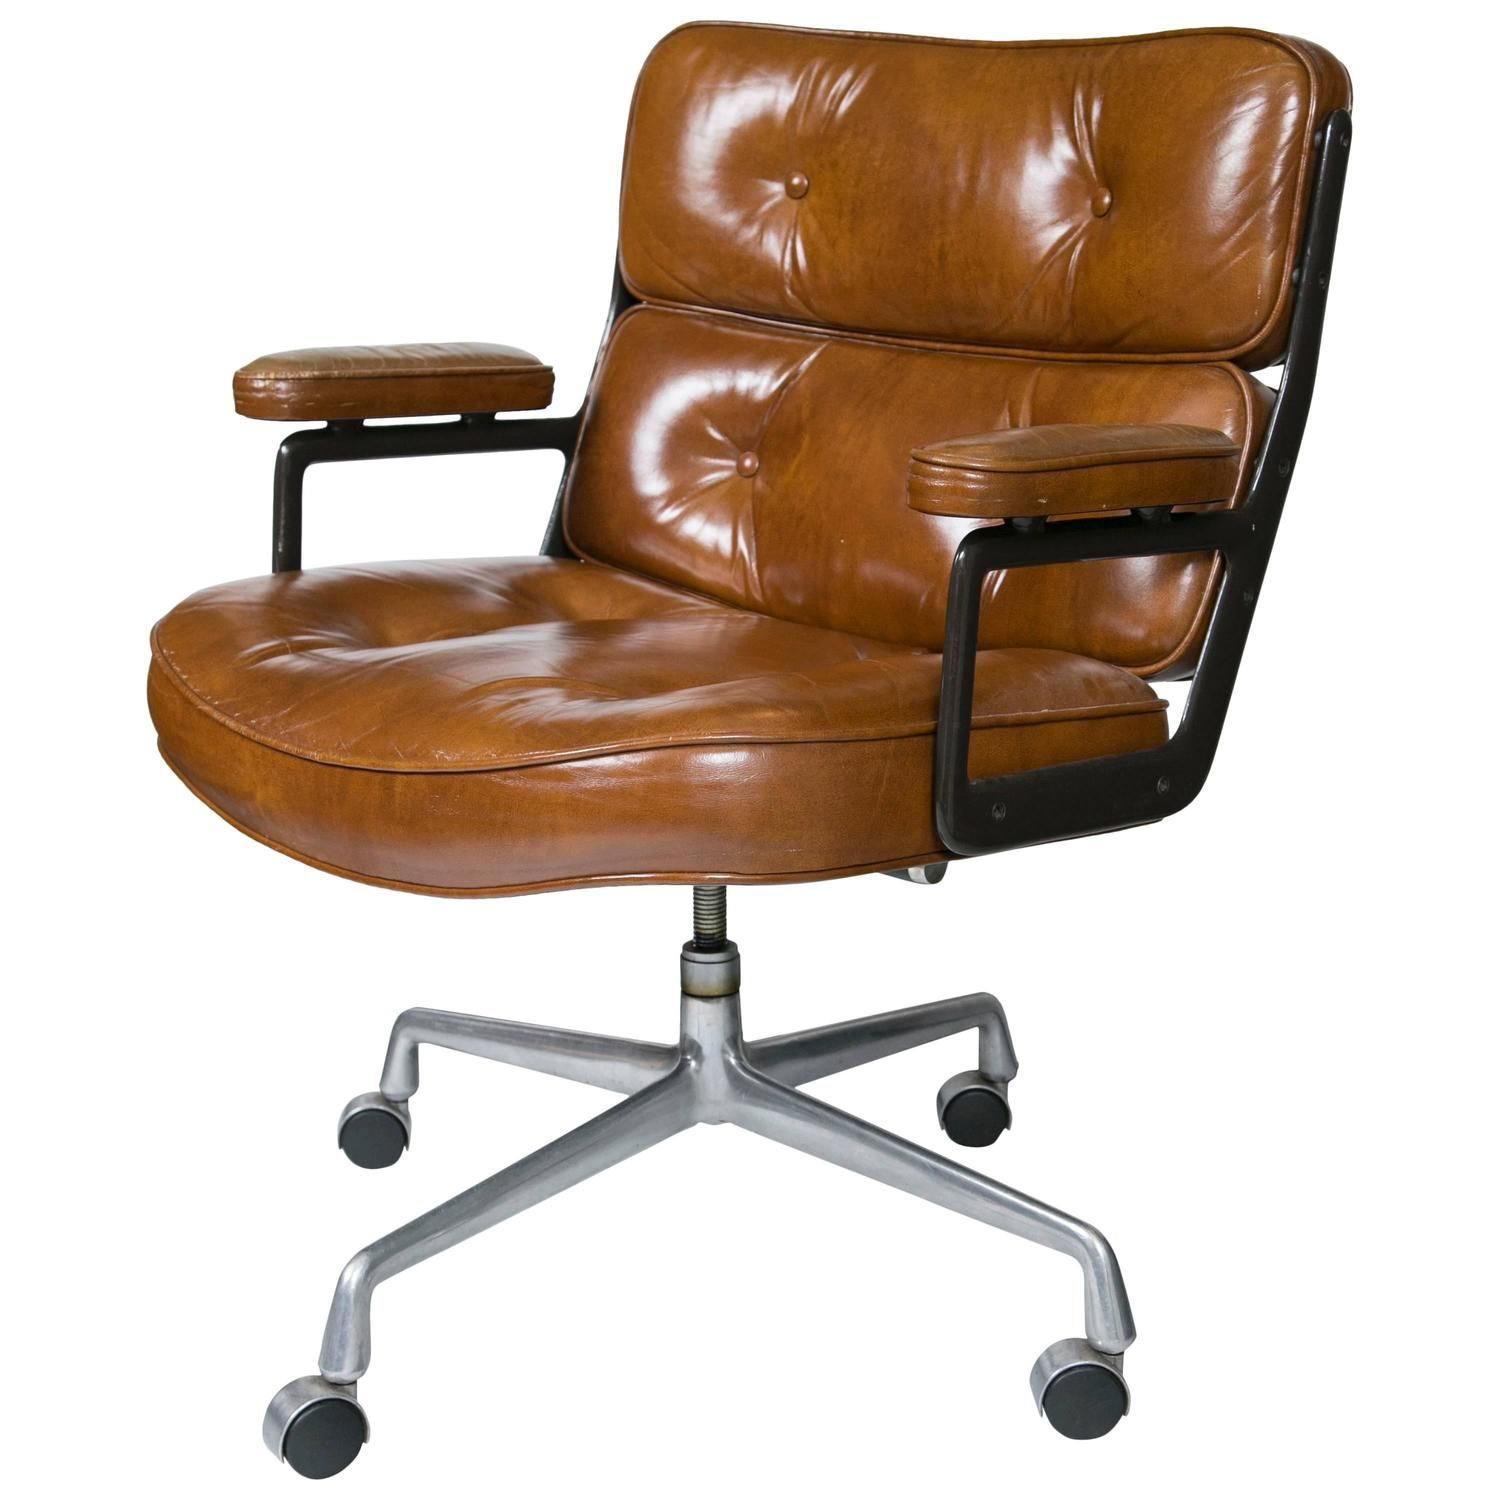 Eames Chair Herman Miller Ebay Eames Executive Chair By Herman Miller At 1stdibs Herman Miller